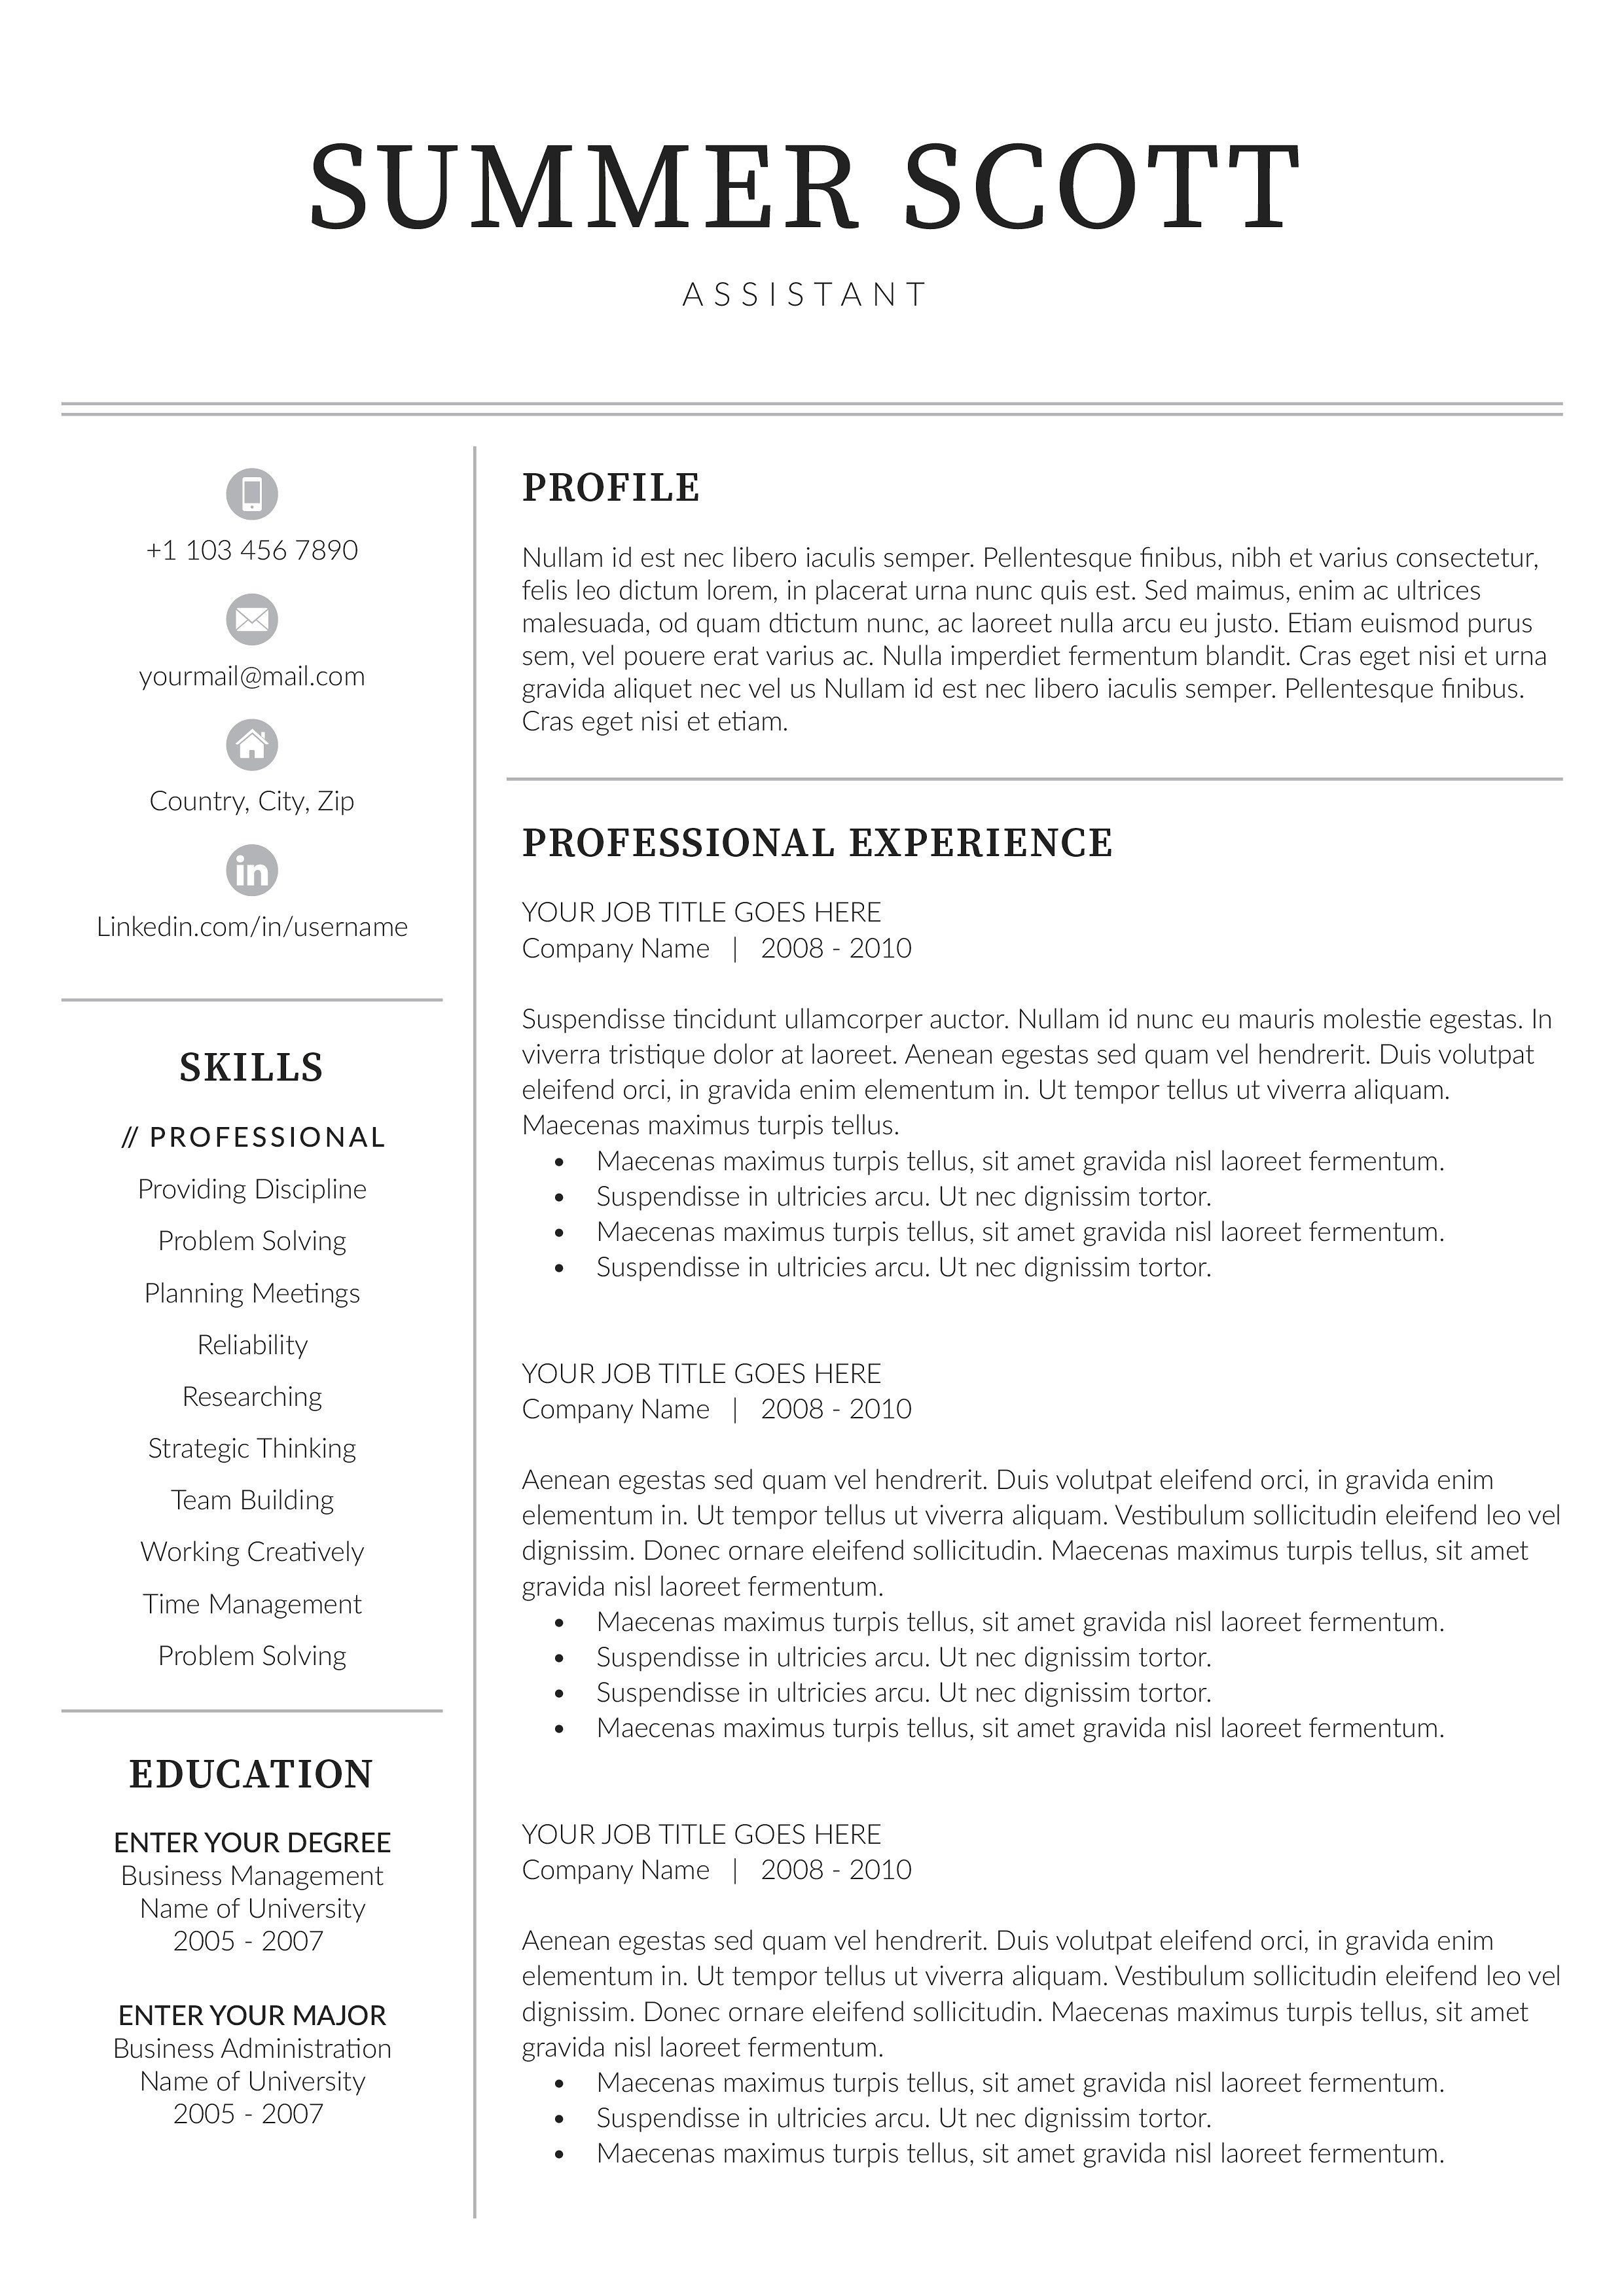 Word Resume | Graphic Design Photography | Resume cover ...